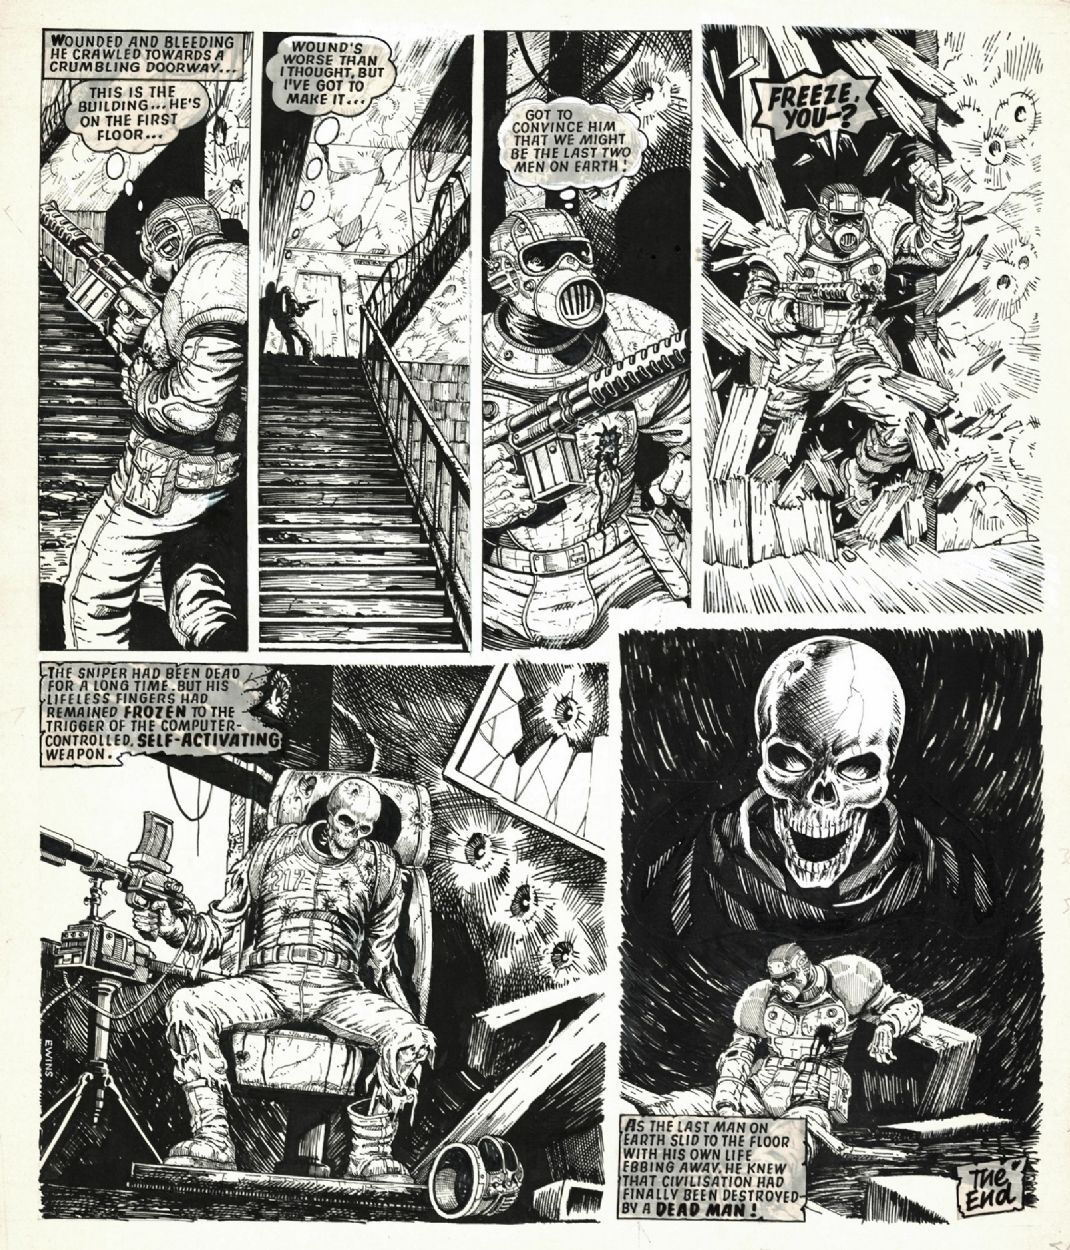 PAGE 3 THE LAST MAN, from 2000 A.D.